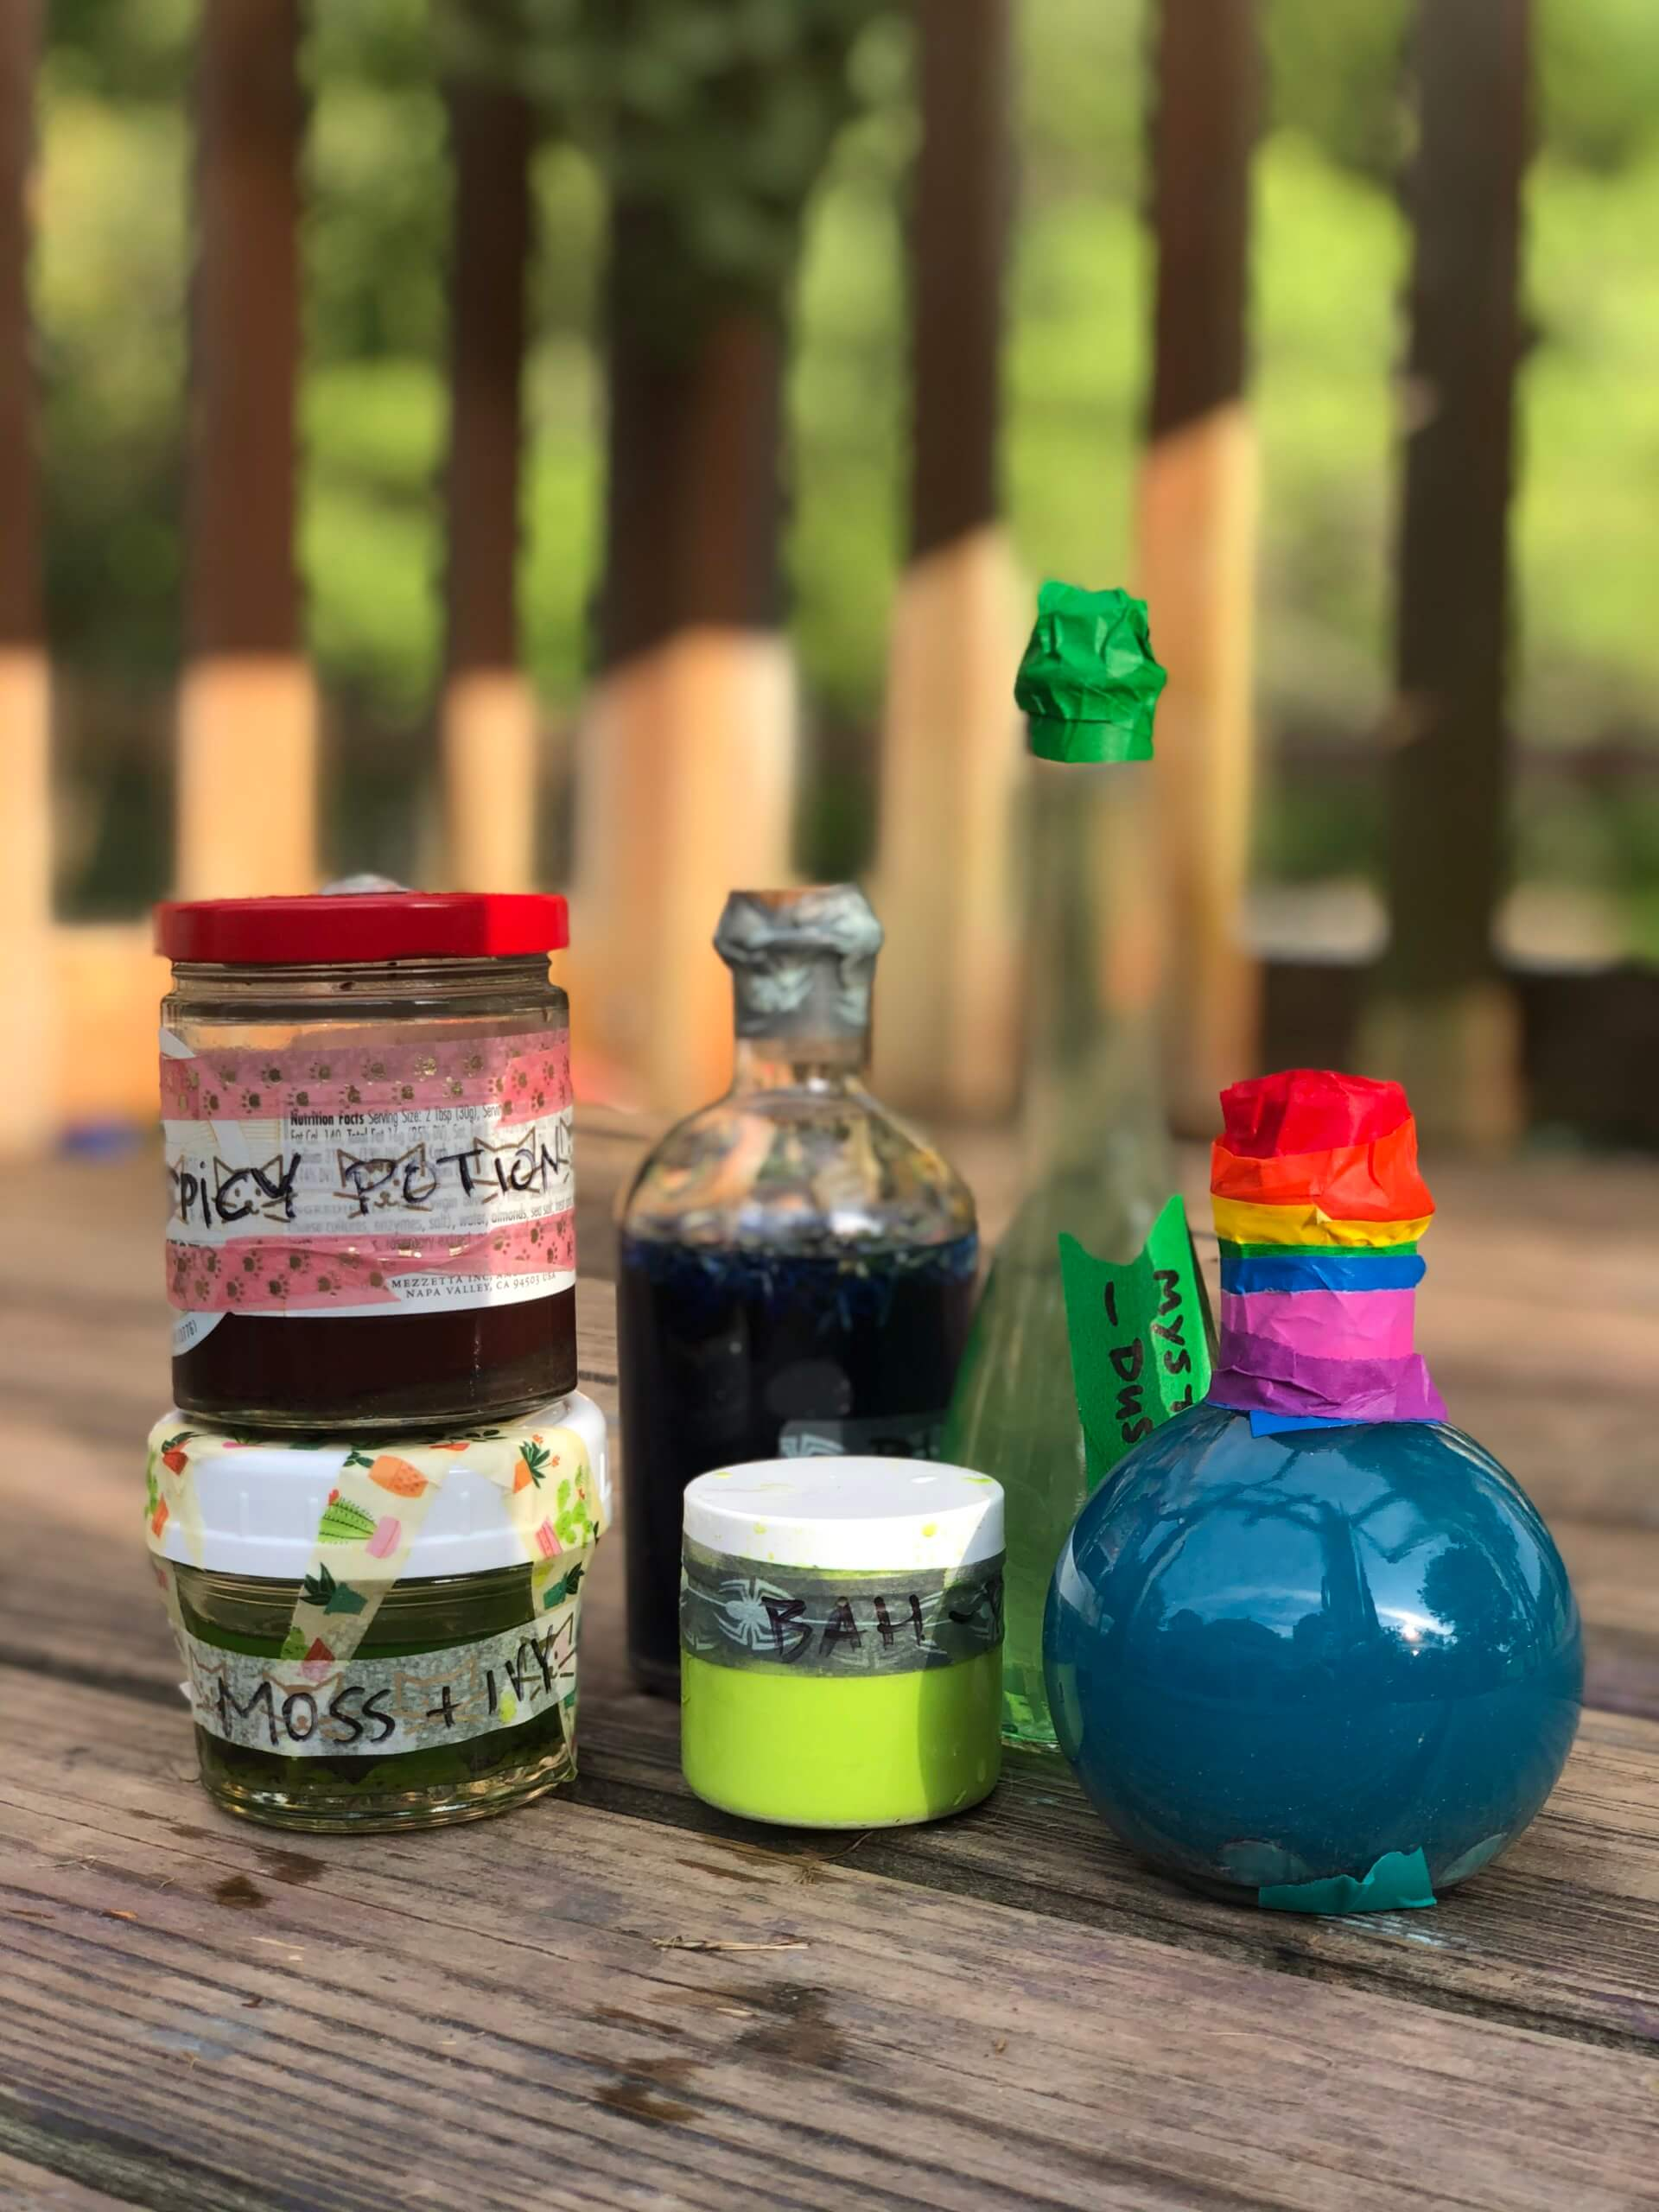 Colorful bottles of magic potion